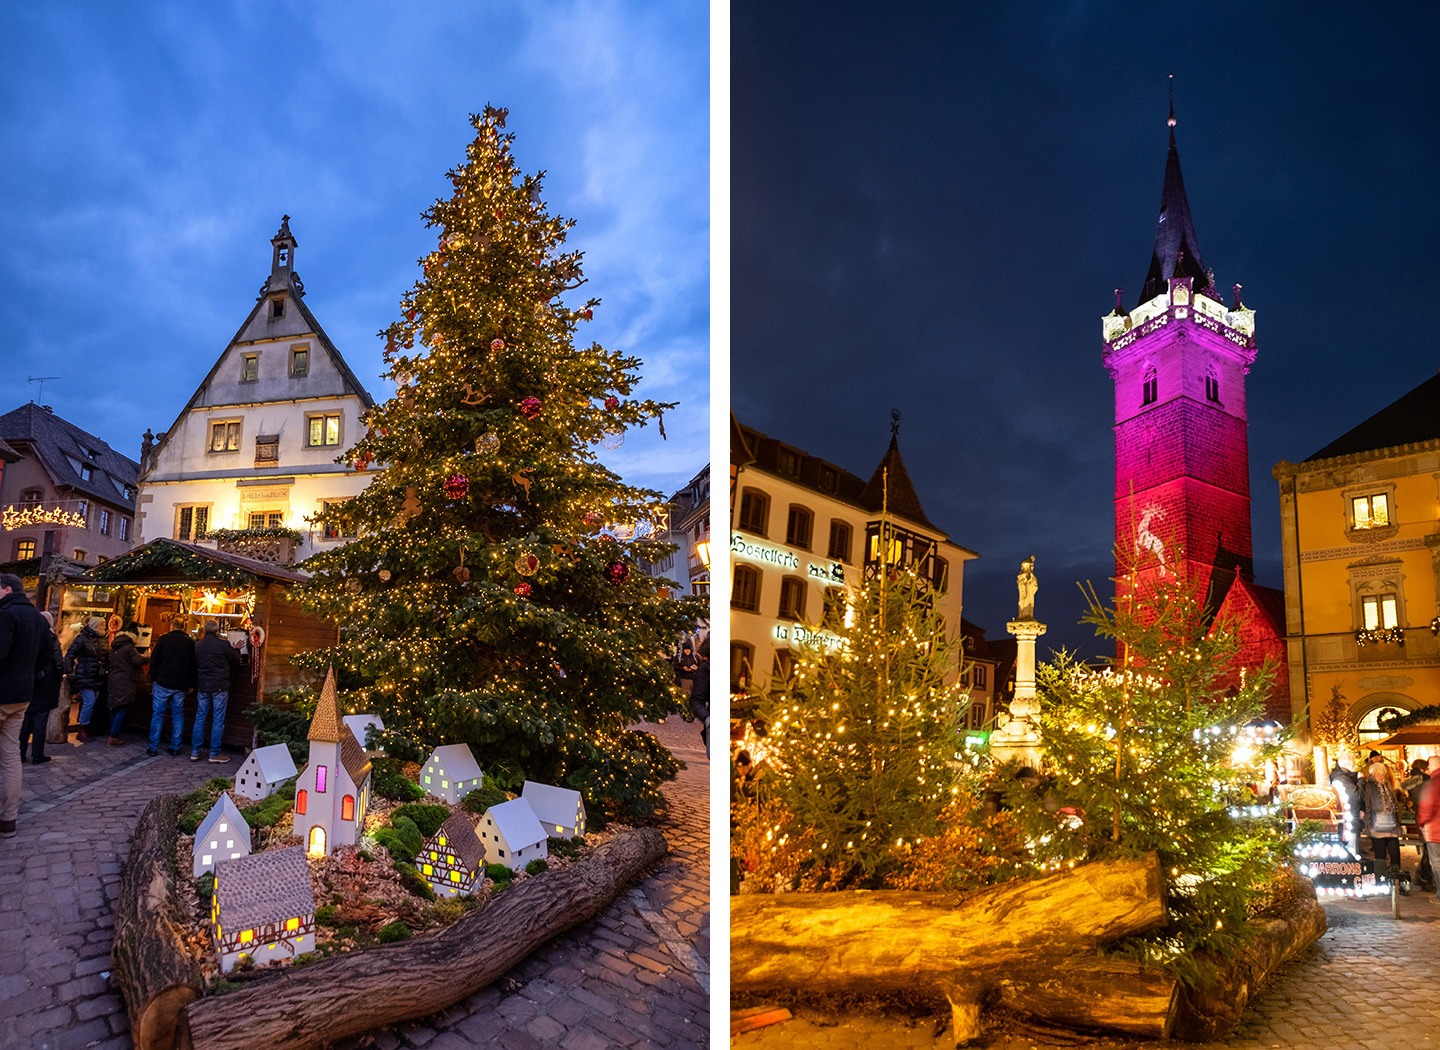 Obernai Christmas markets in the Alsace, France